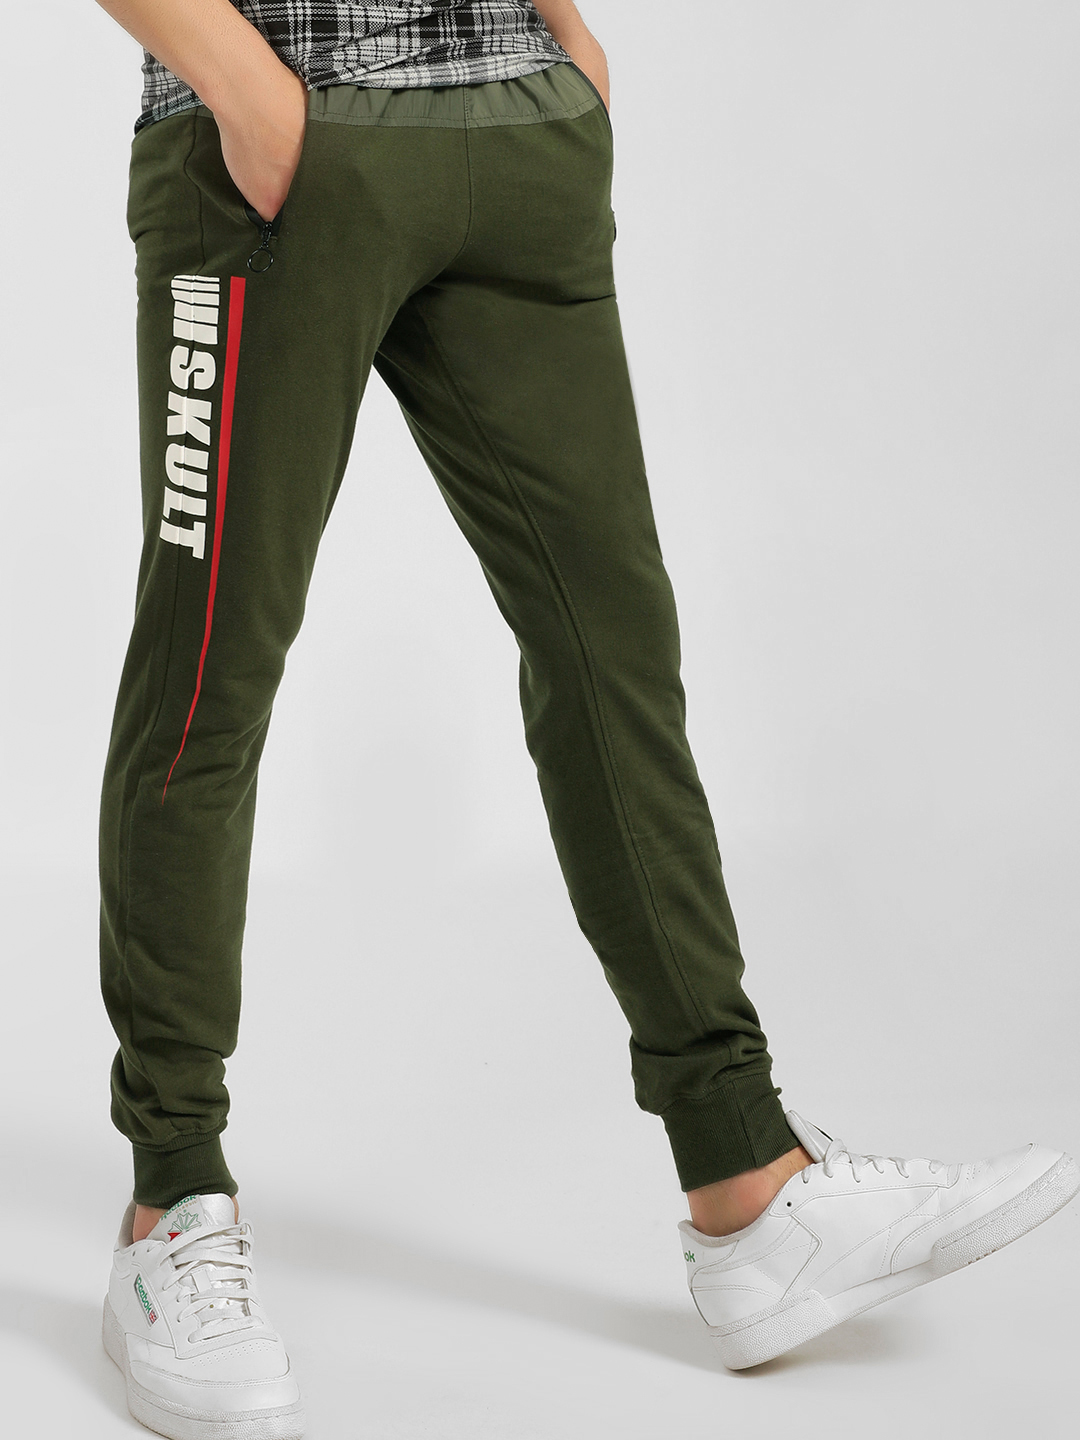 SKULT By Shahid Kapoor Green Text Side Tape Joggers 1